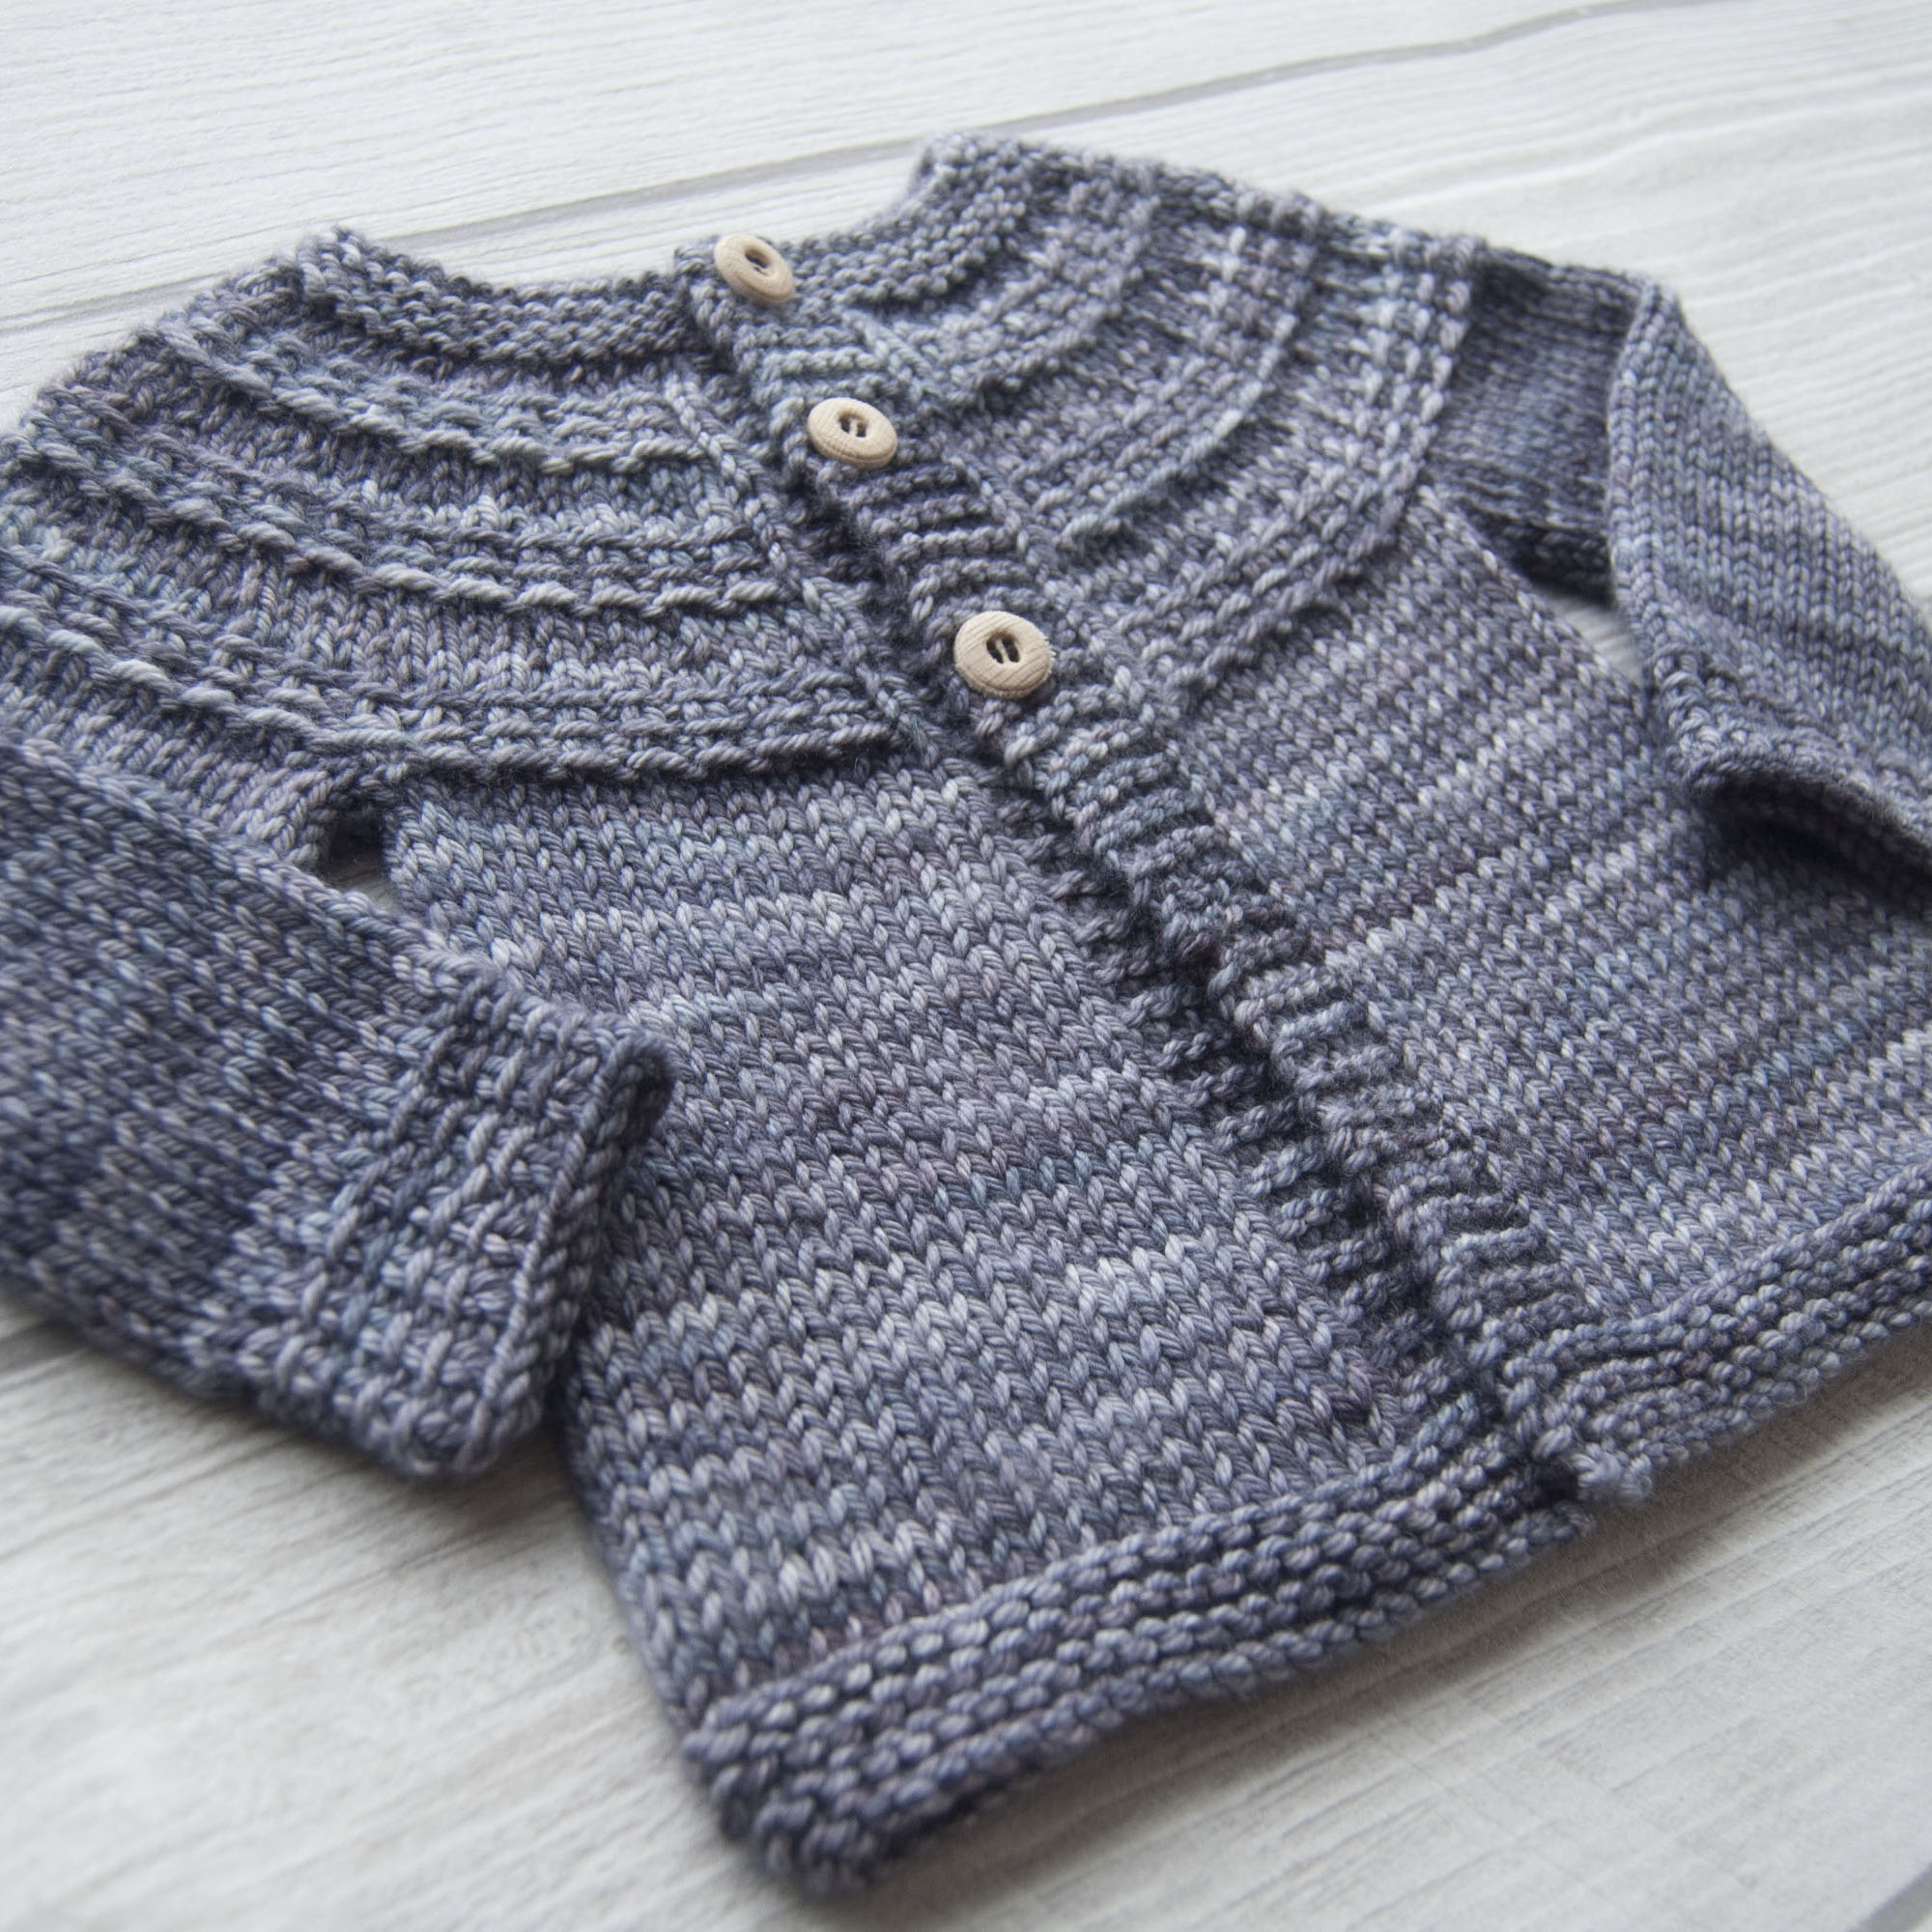 Hyphen unisex baby and child cardigan - knitting pattern